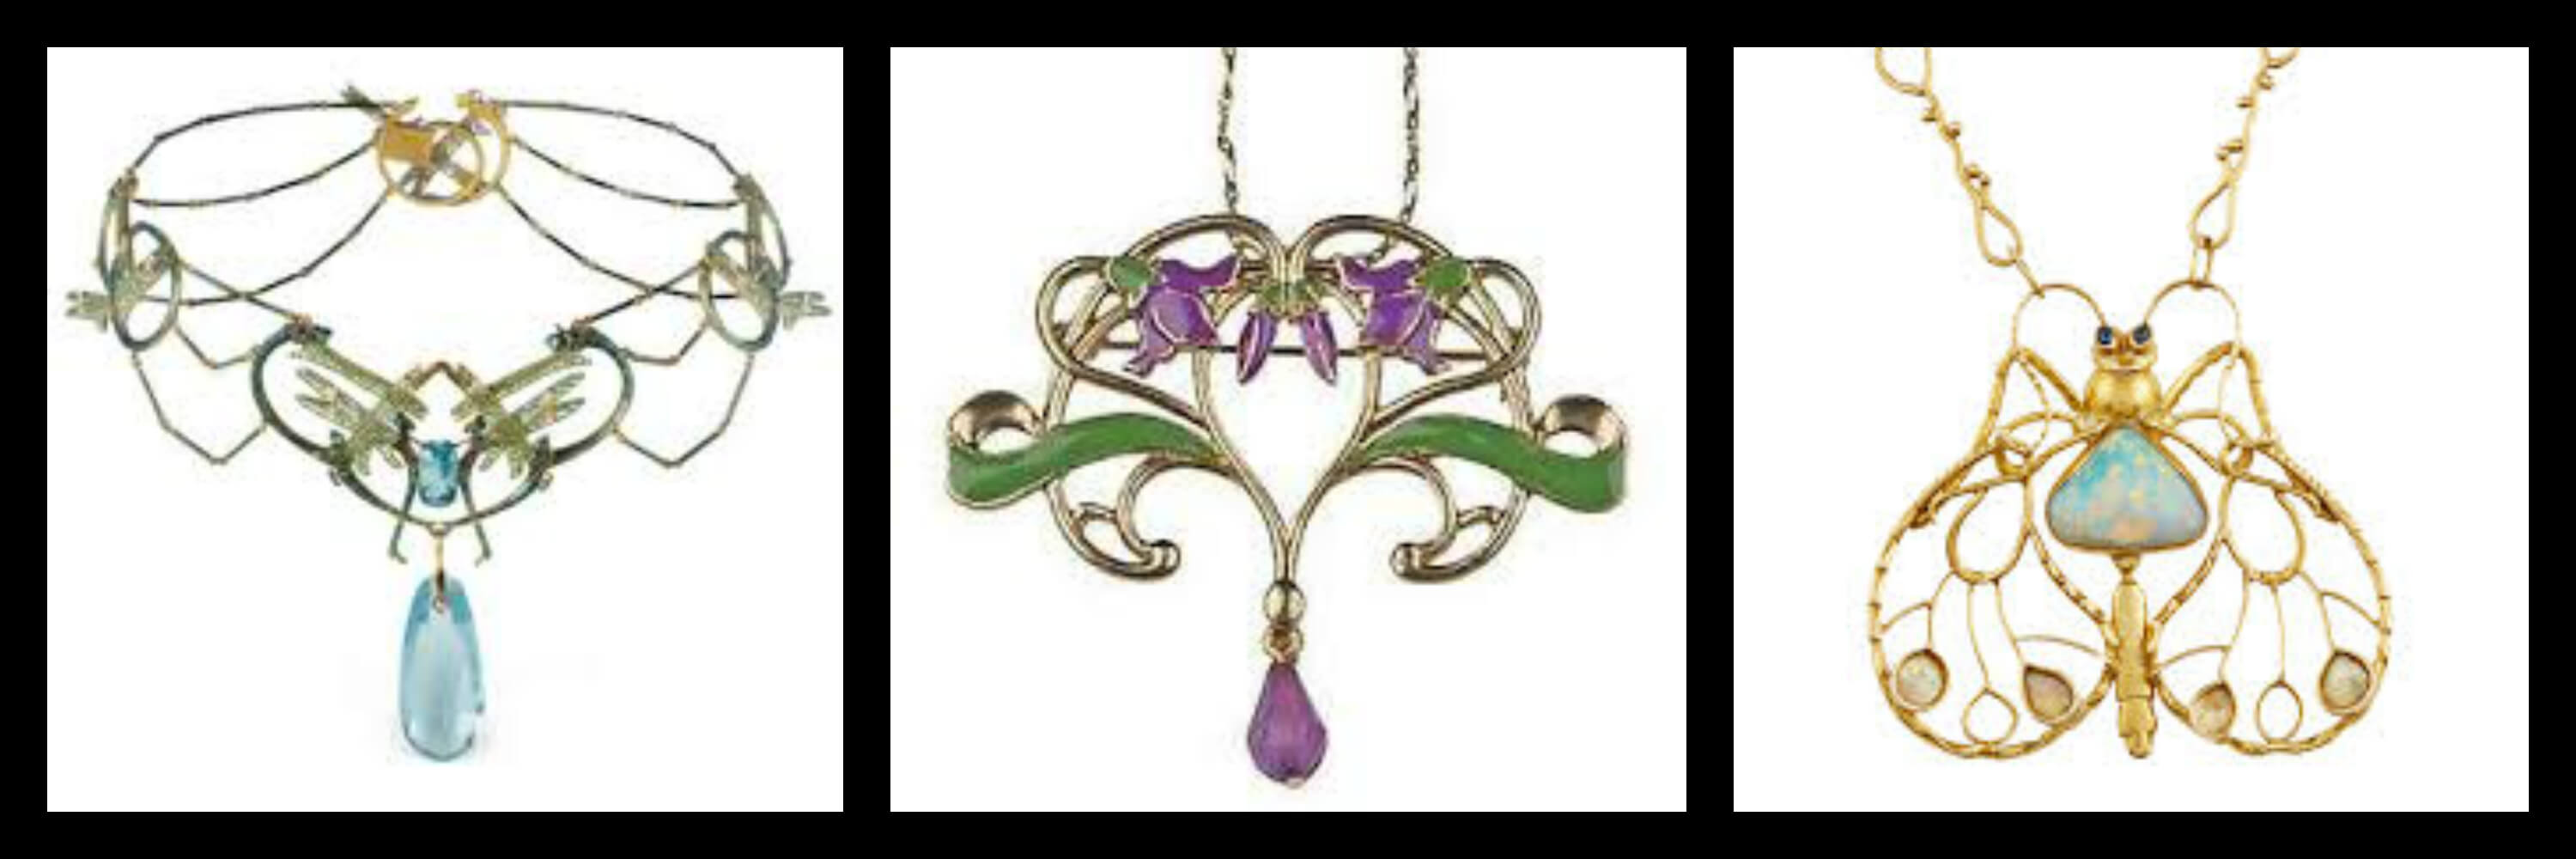 Examples of Art Nouveau Jewellery